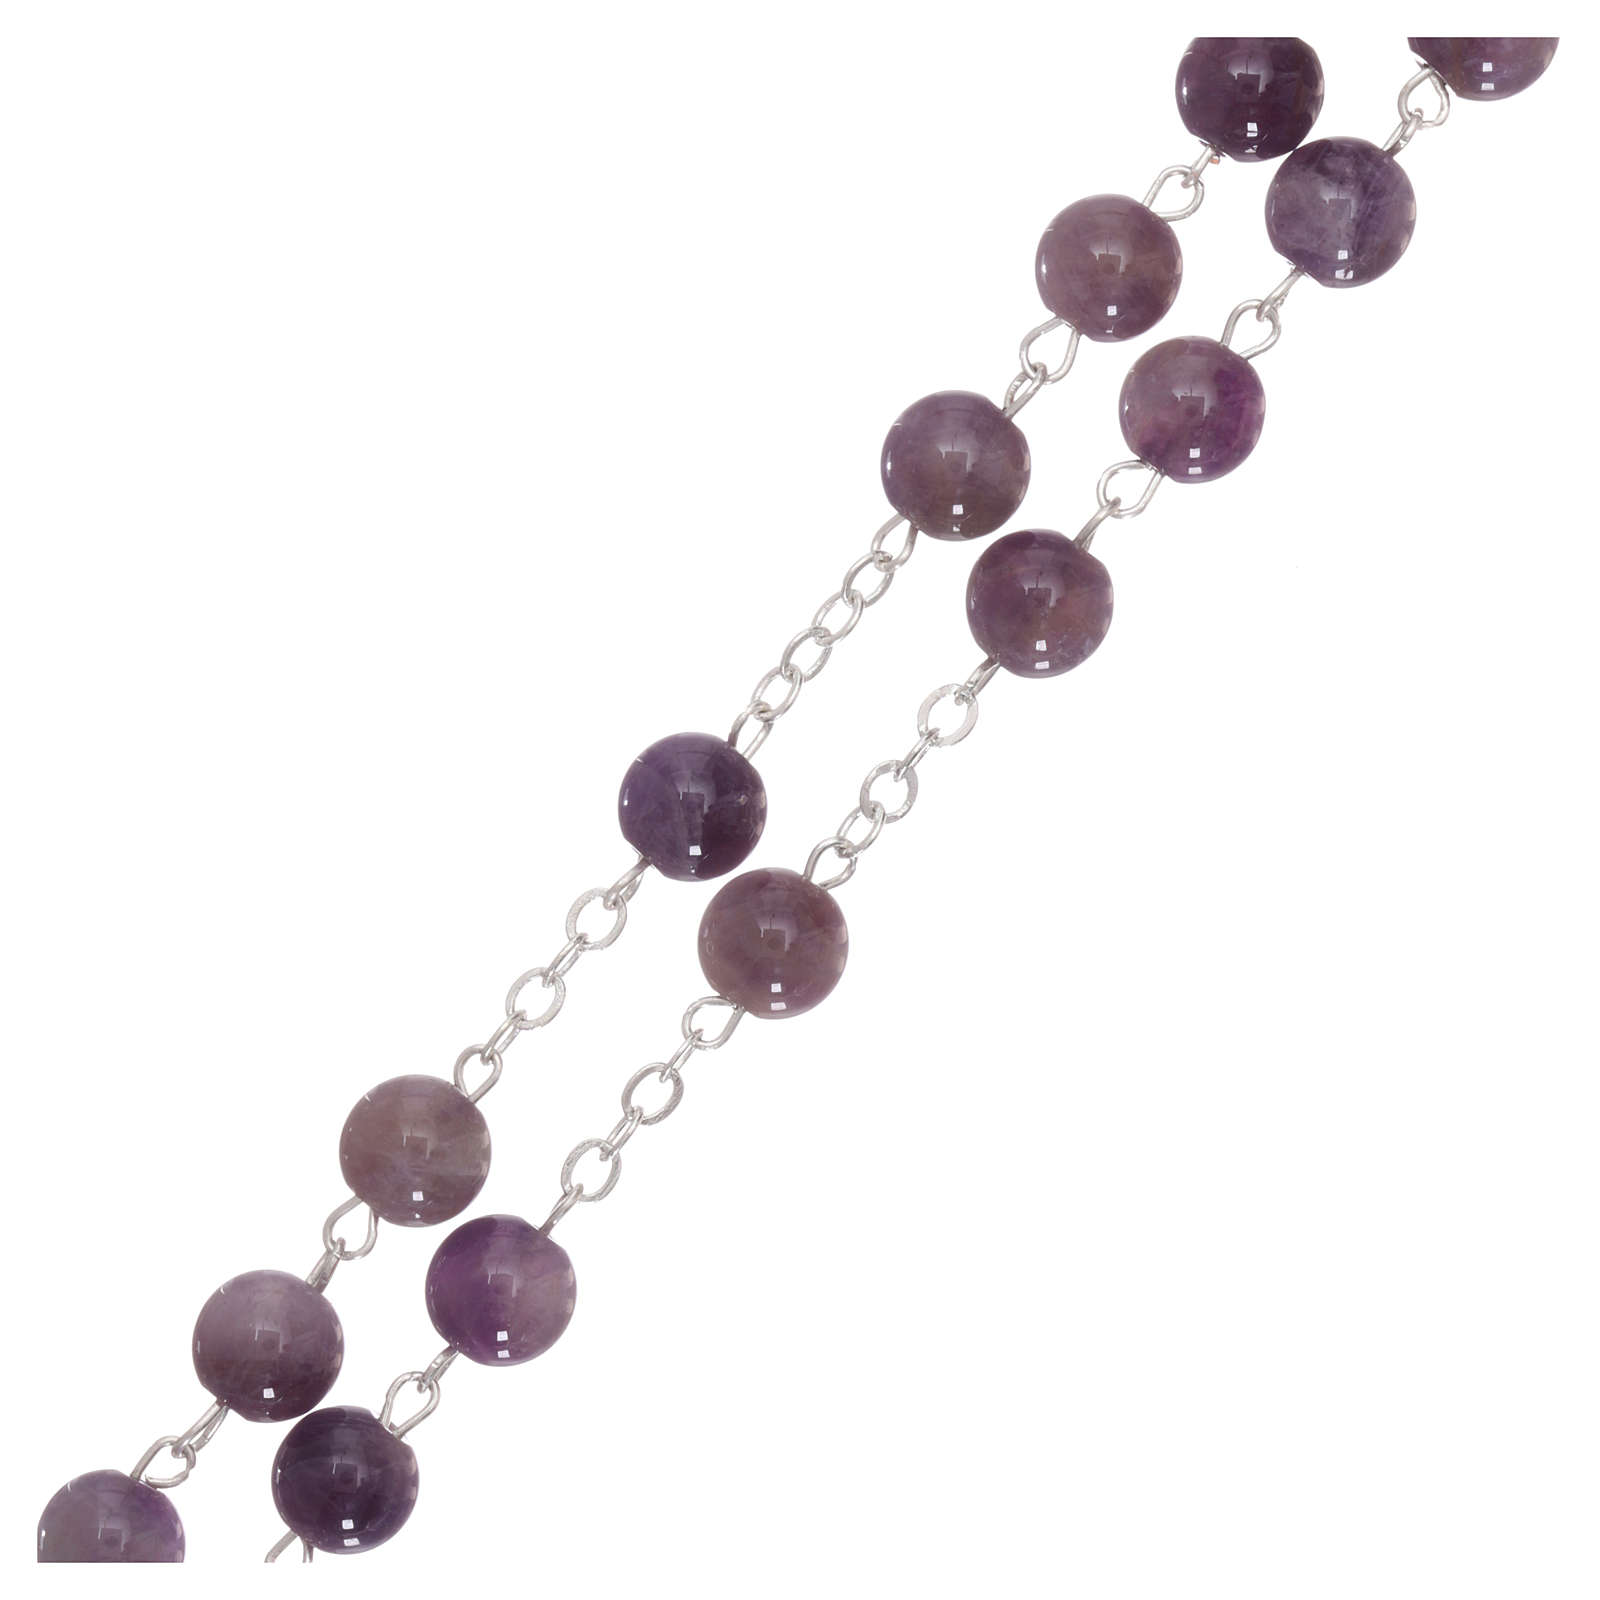 Amethyst rosary beads 6 mm 4